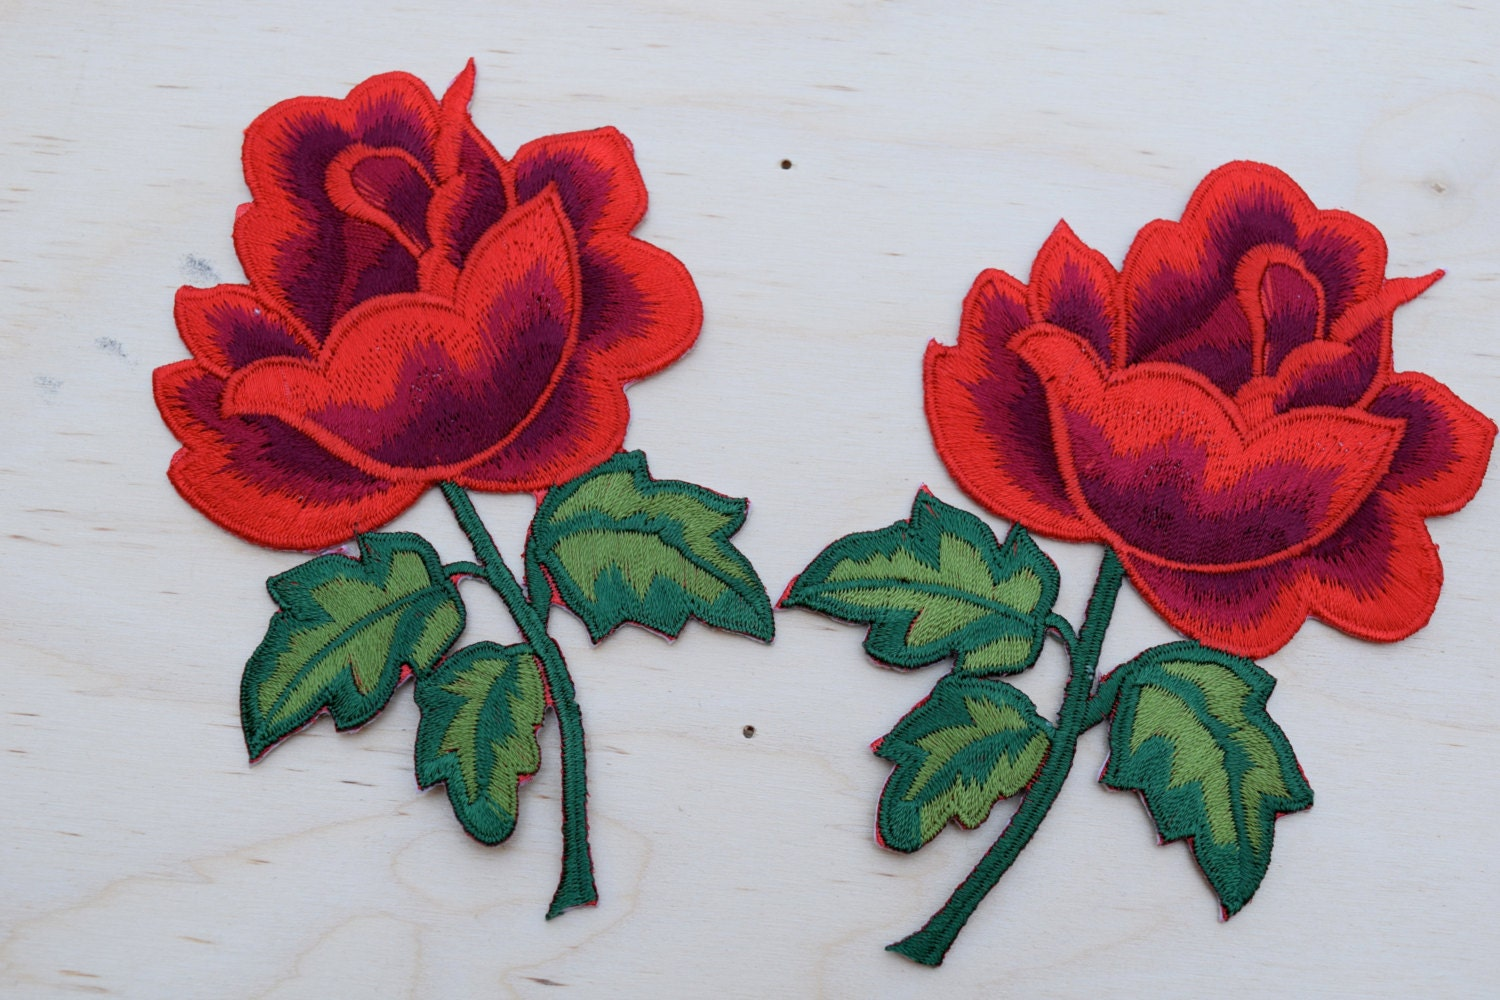 Red rose embroidery patches strickingly vibrant